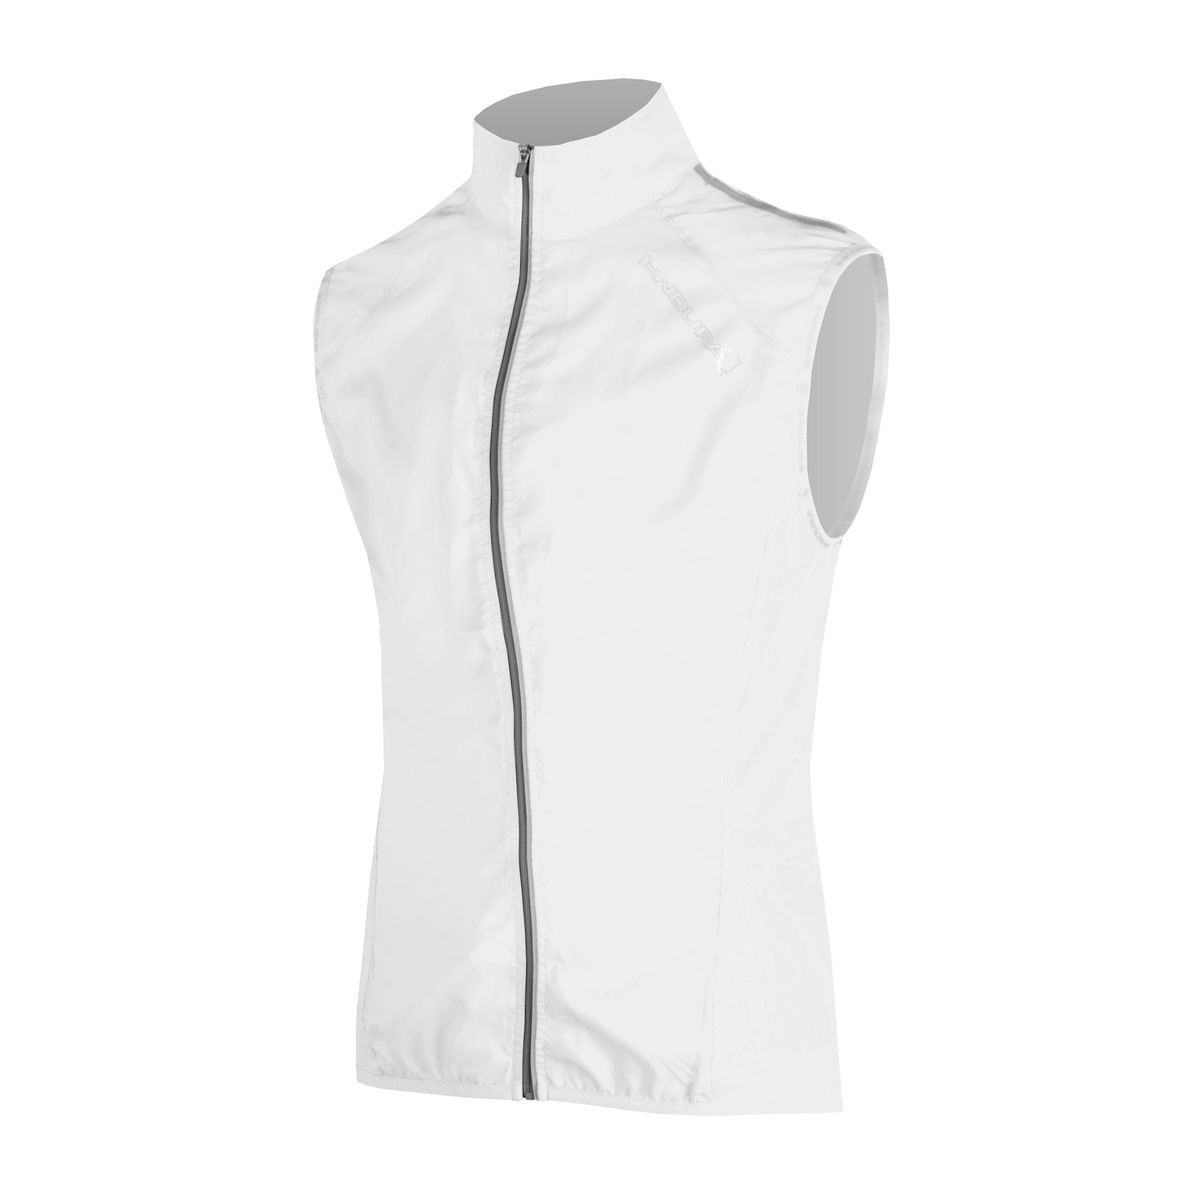 ENDURA WOMEN'S PAKAGILET II wind vest | Vests